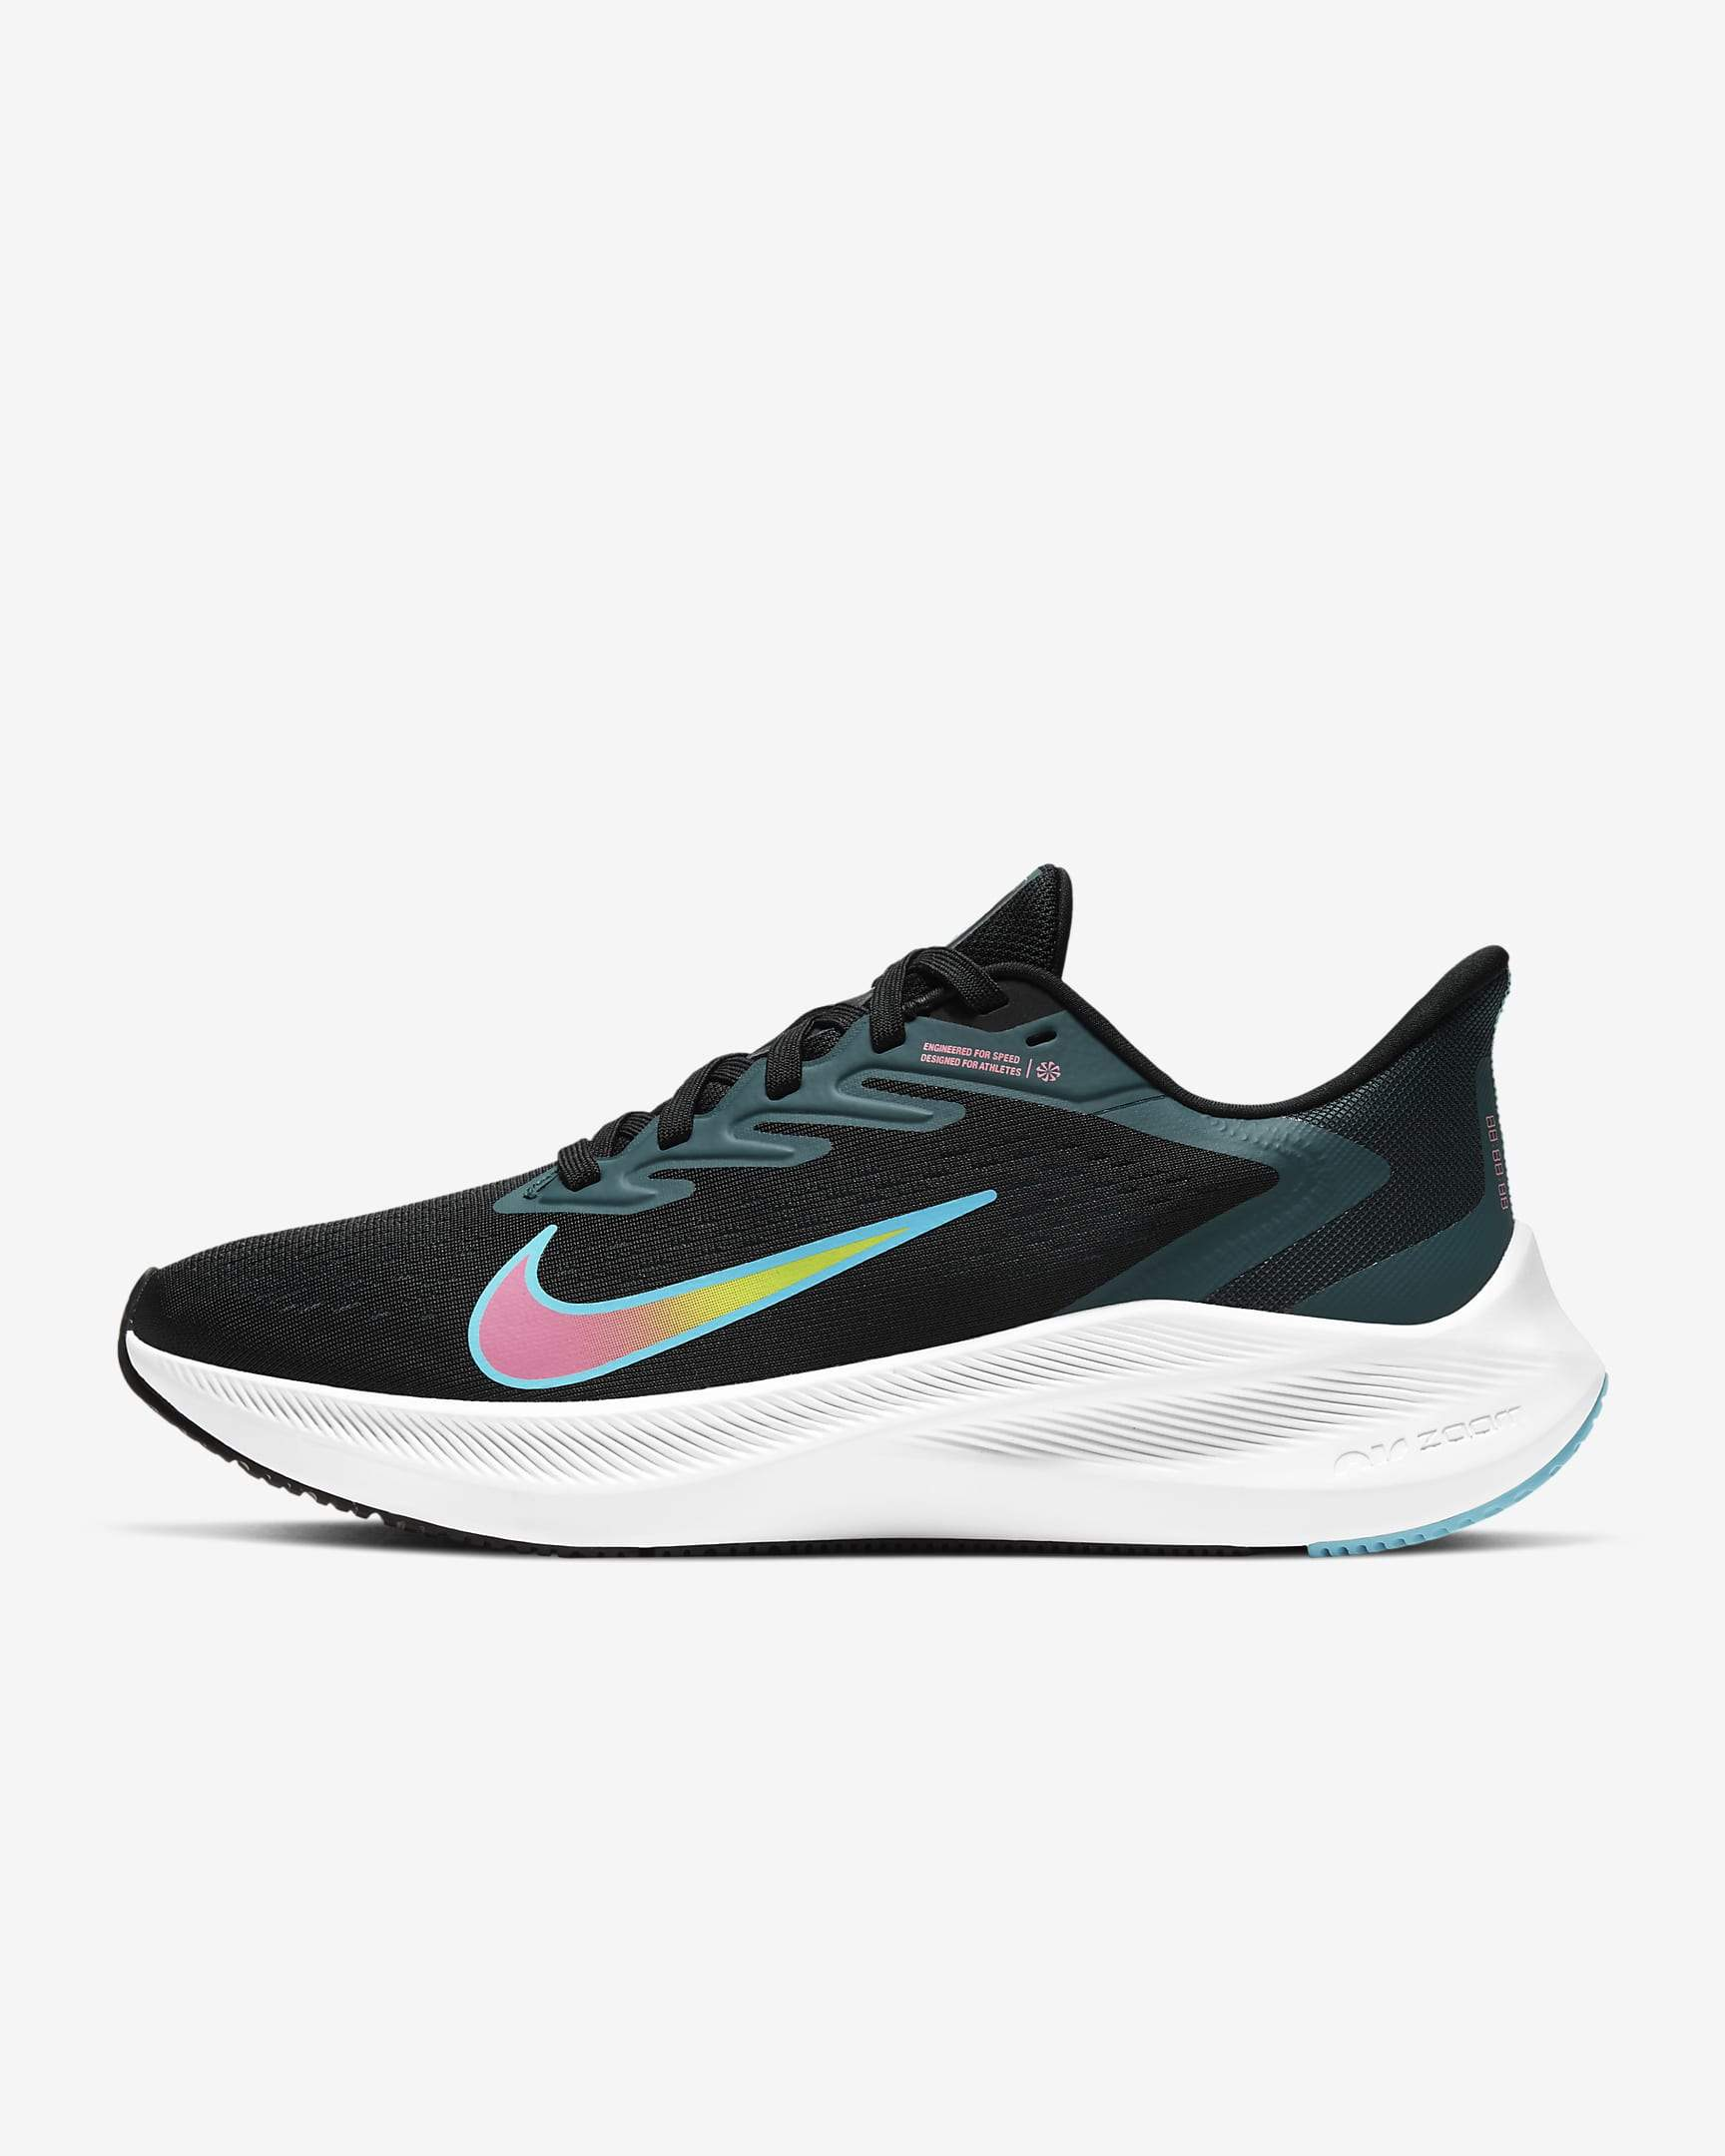 Nike Womens Air Zoom Winflo 7 - Black/Lagoon Pulse-Dark Teal Green SP-Footwear-Womens Nike